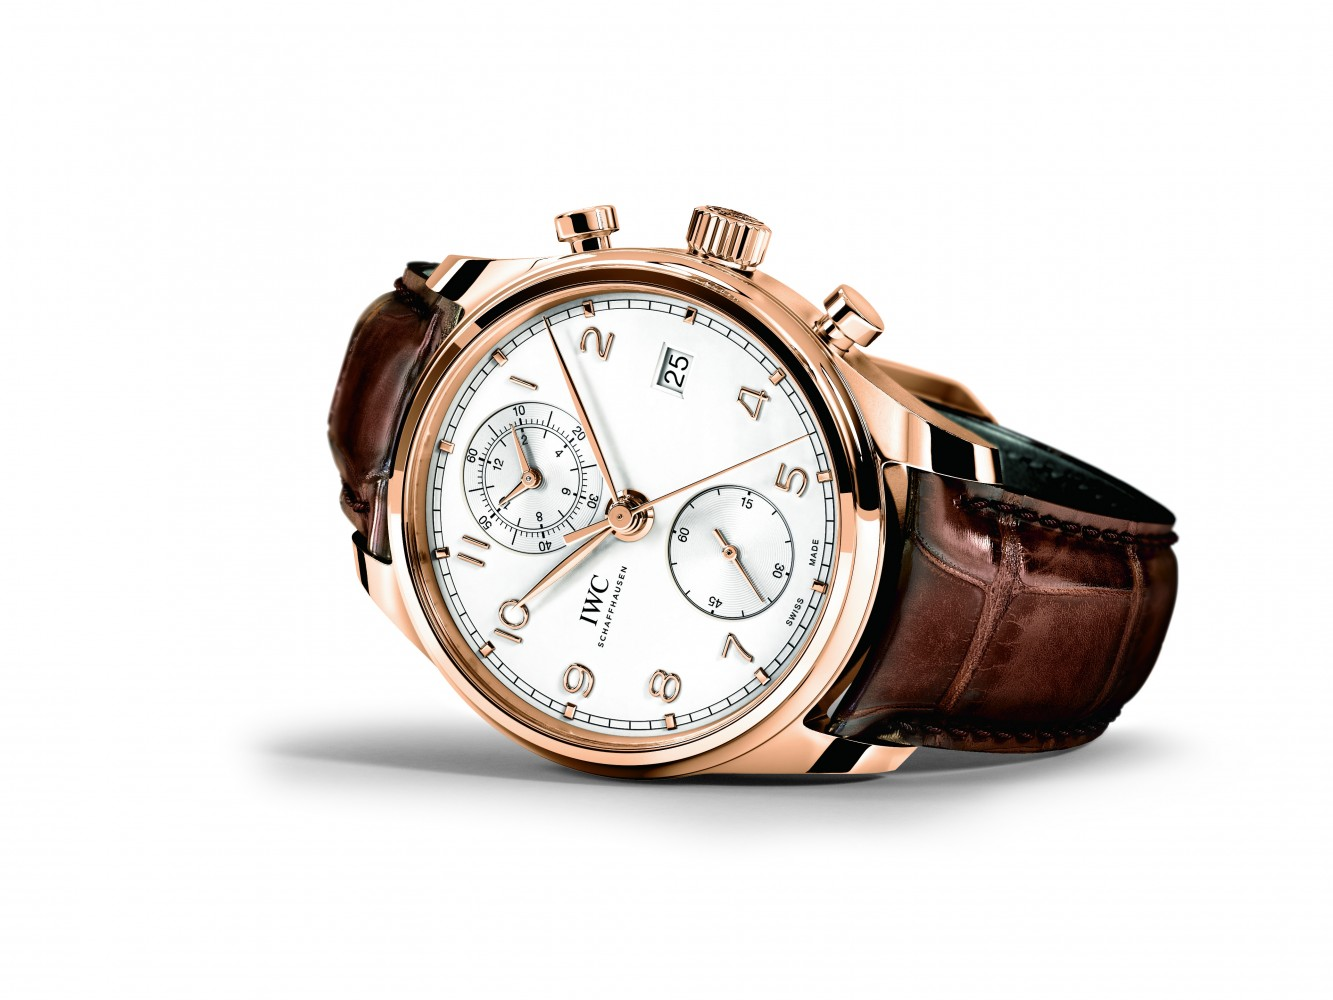 IWC_390301_Portugieser Chronograph Classic